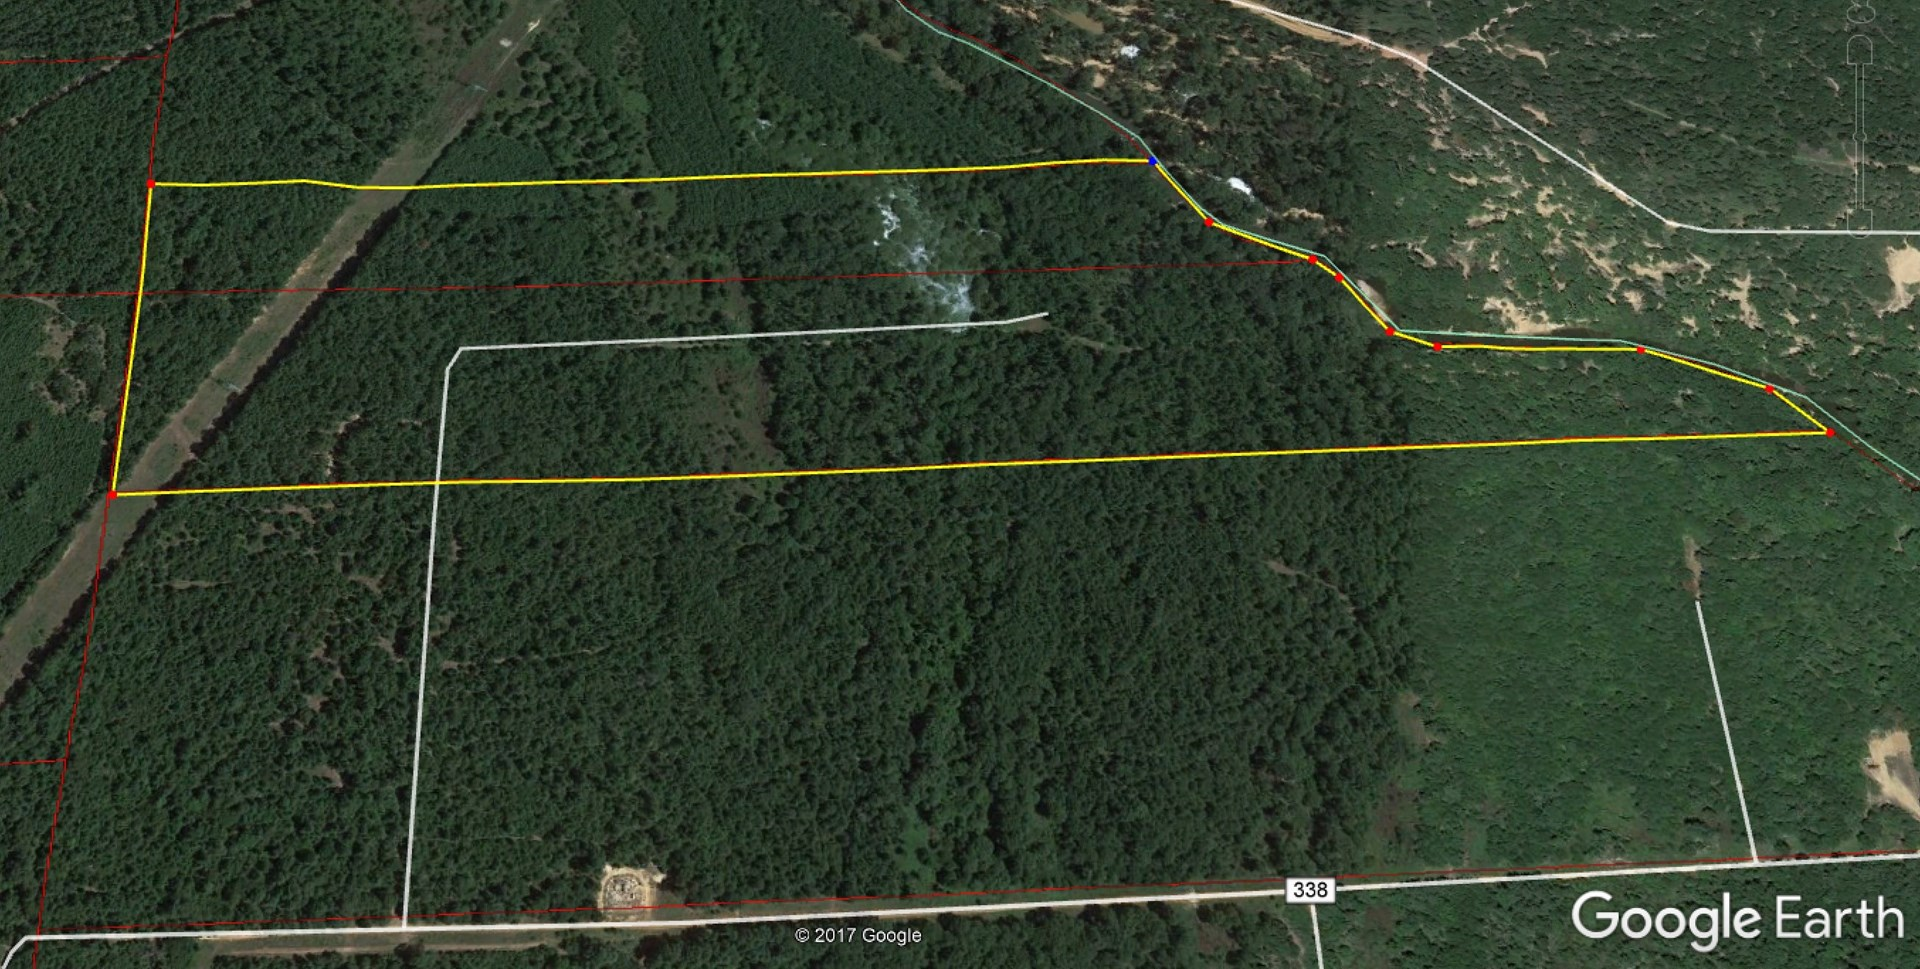 EAST TEXAS RIVERFRONT LAND FOR SALE IN ANDERSON COUNTY TEXAS